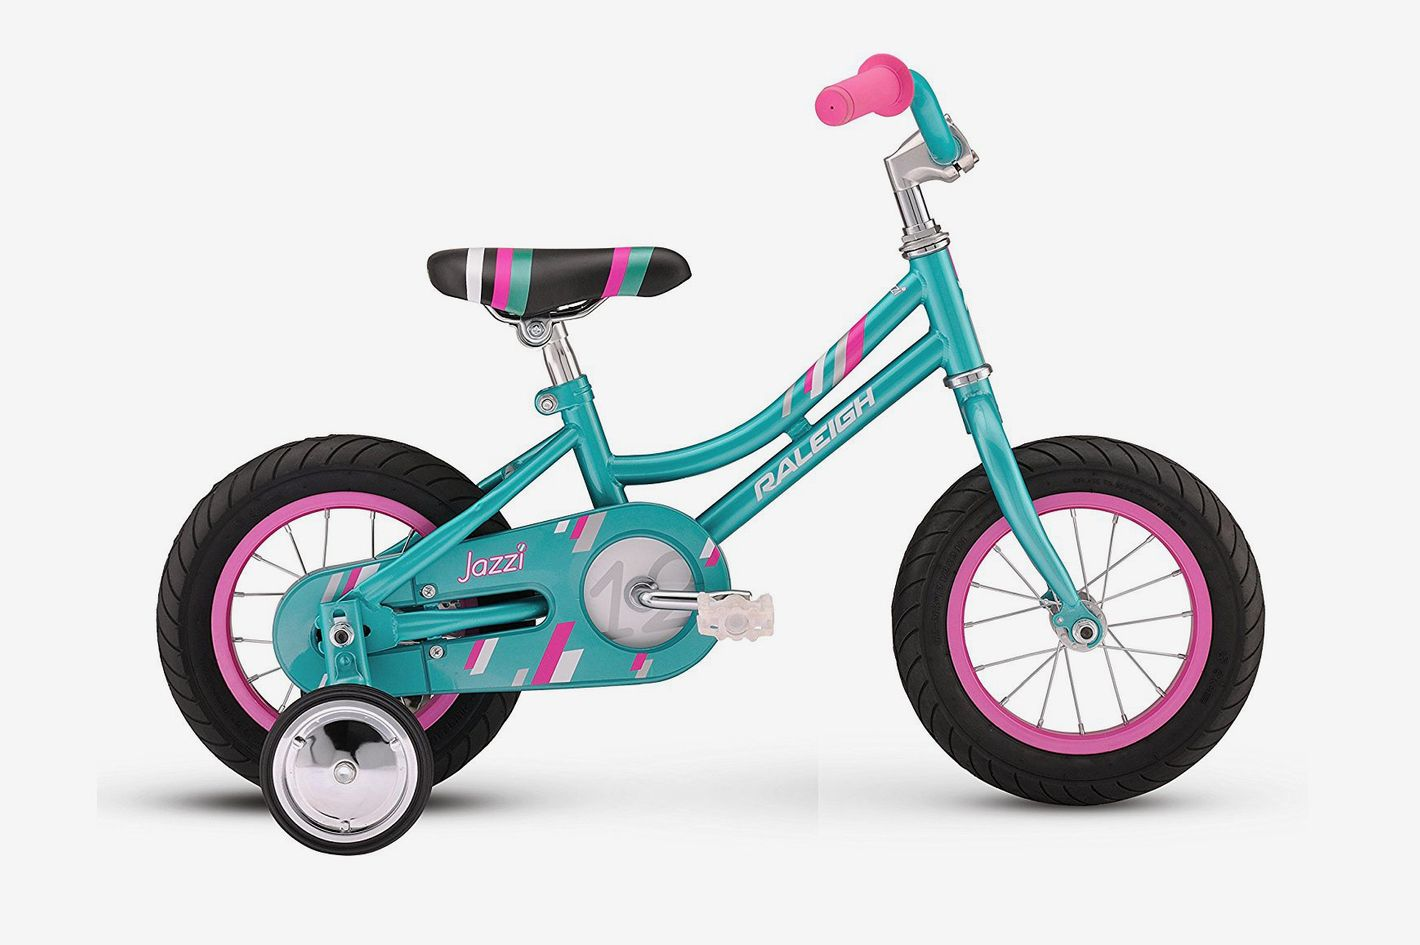 Raleigh Jazzi 12 Complete Kids Bike